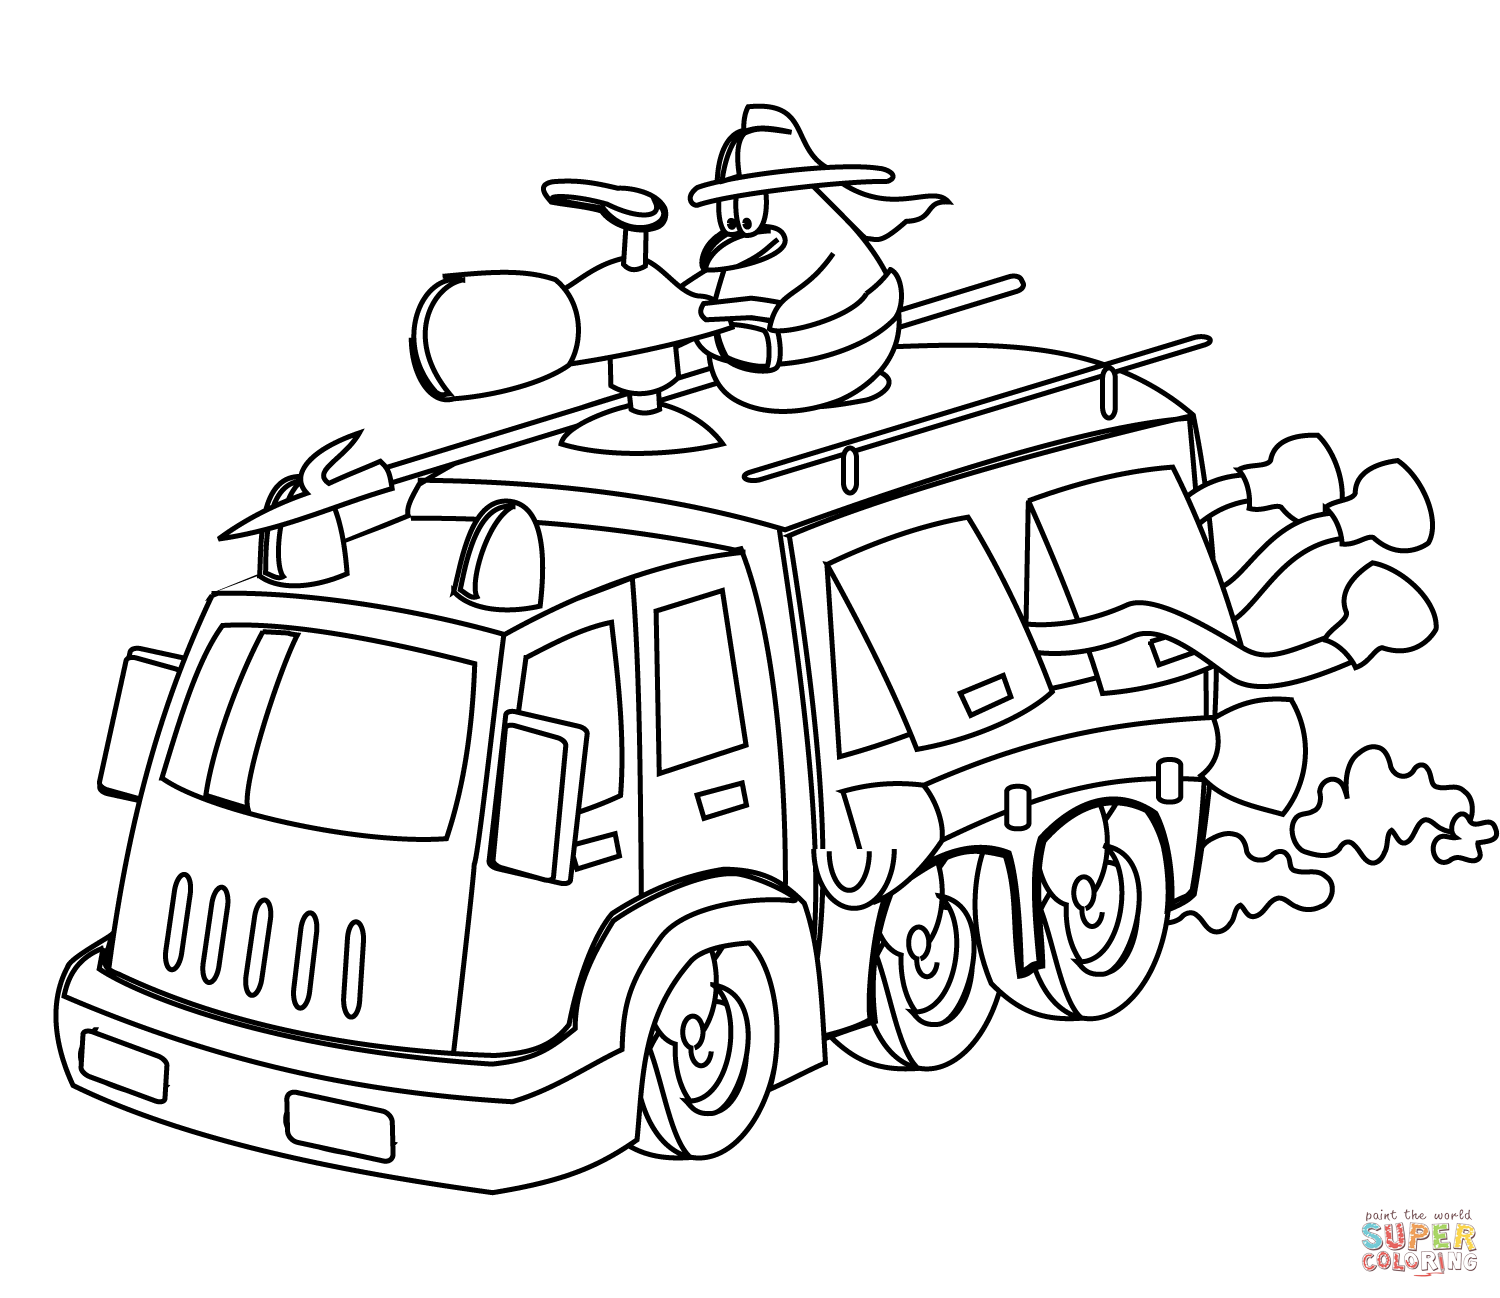 free fire truck coloring pages free fire truck coloring pages coloring home fire coloring free pages truck